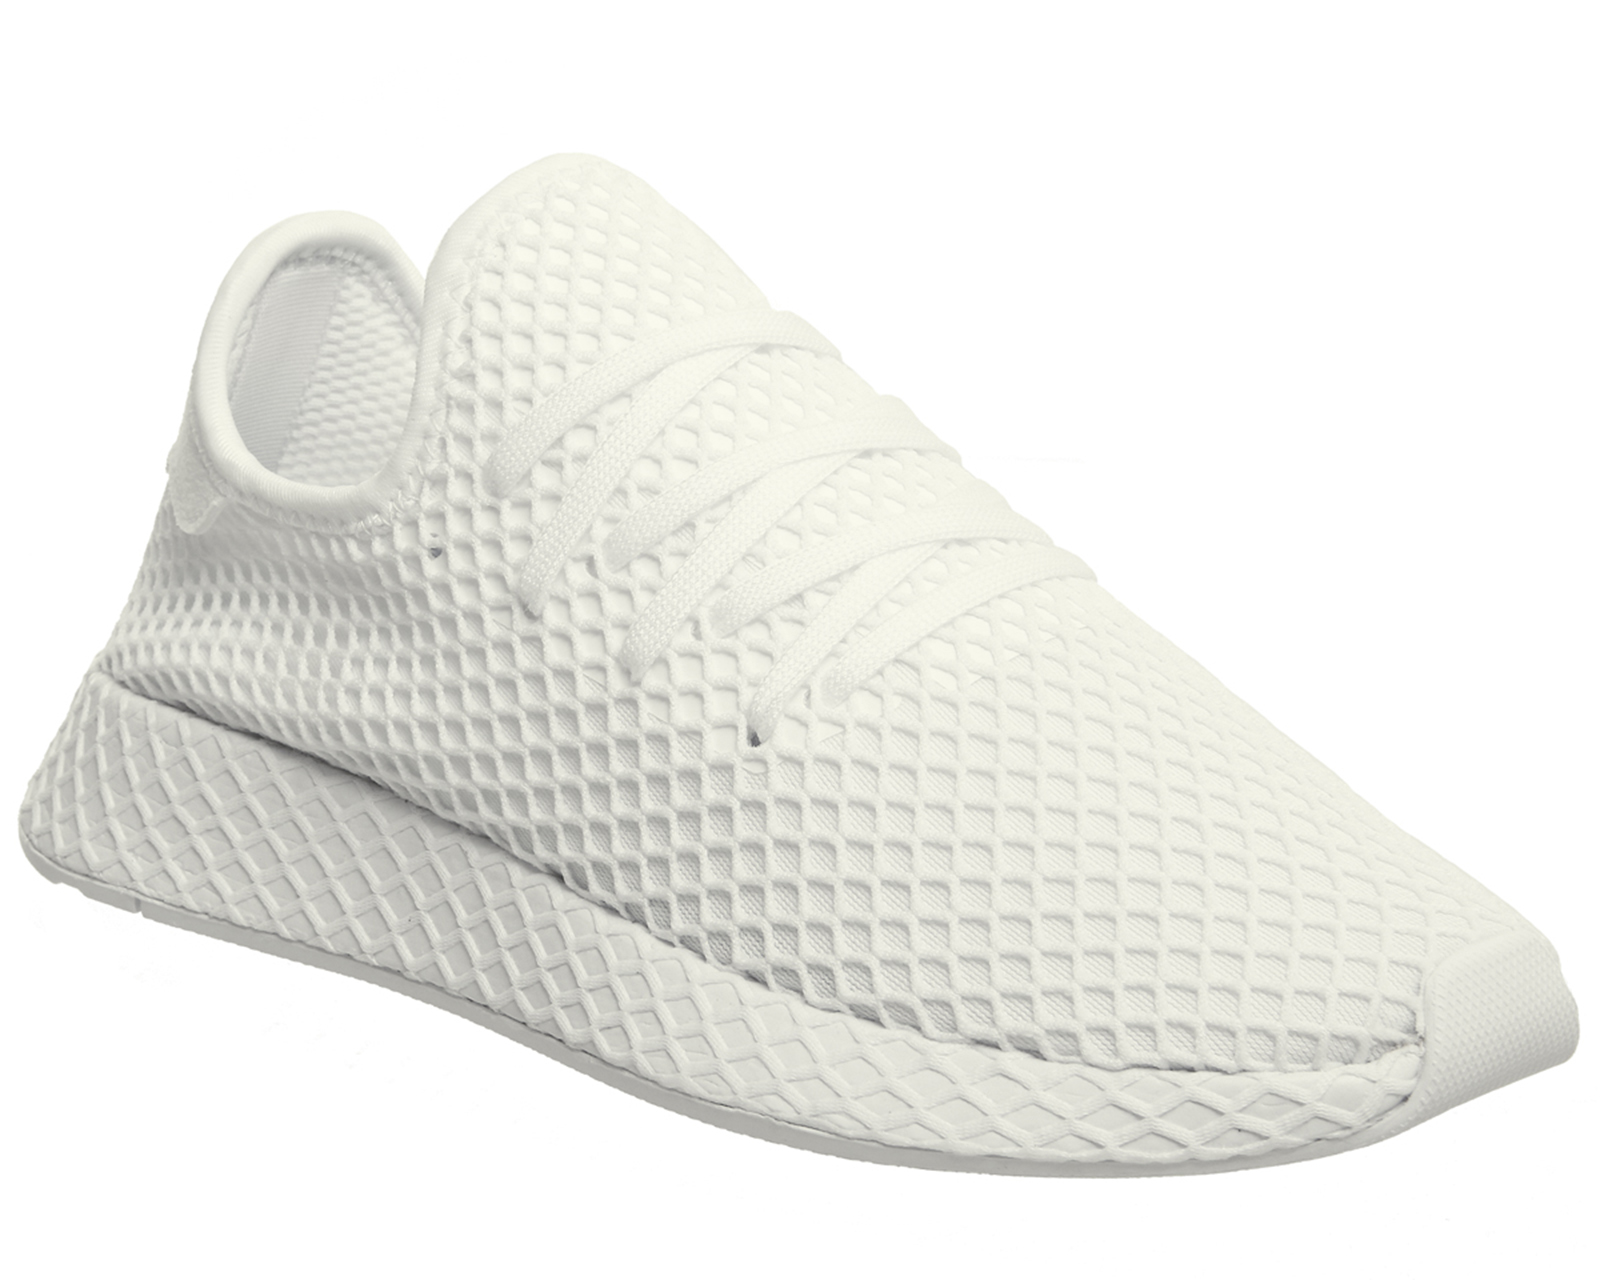 dc57dc2d8af9 Sentinel Mens Adidas Deerupt Trainers WHITE WHITE WHITE Trainers Shoes